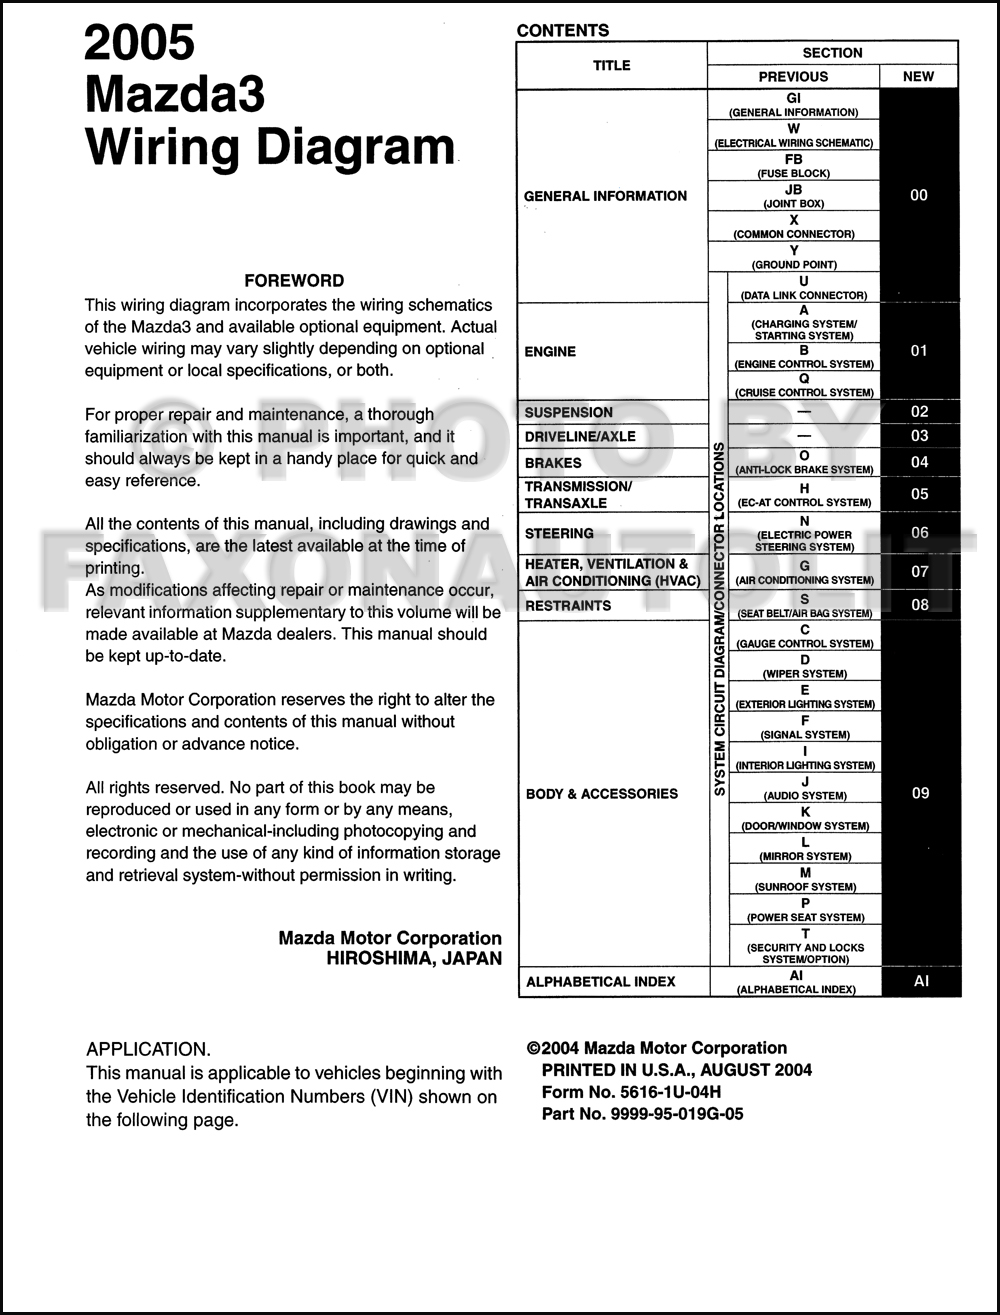 2008 Mazda 3 Wiring Schematic Diagrams Diagram Manual 34 Protege Trunk